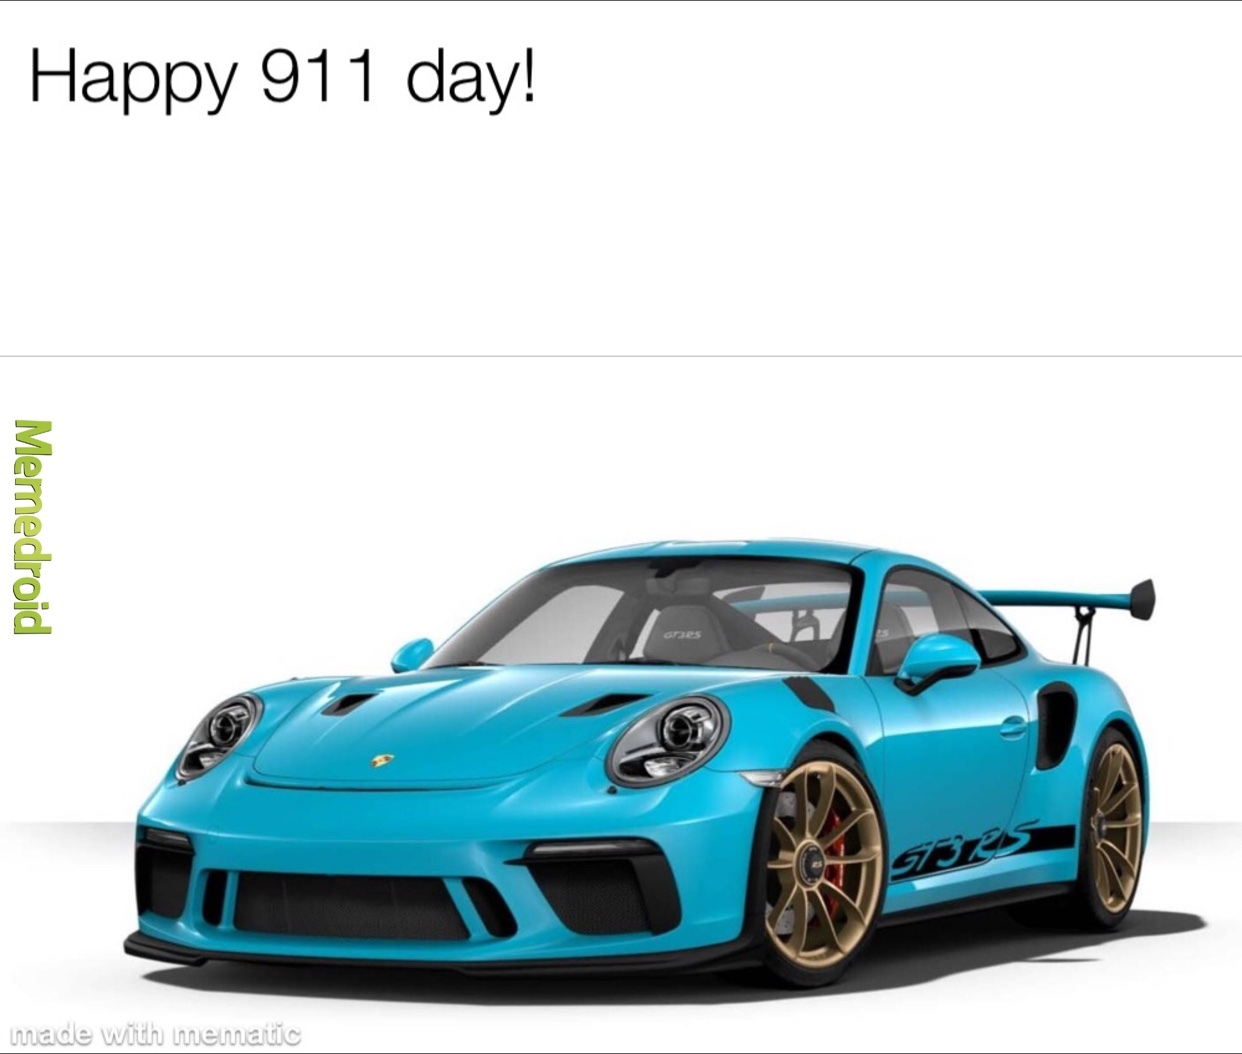 Porsche has 911's also like the Porsche 911 GT3 RS - meme